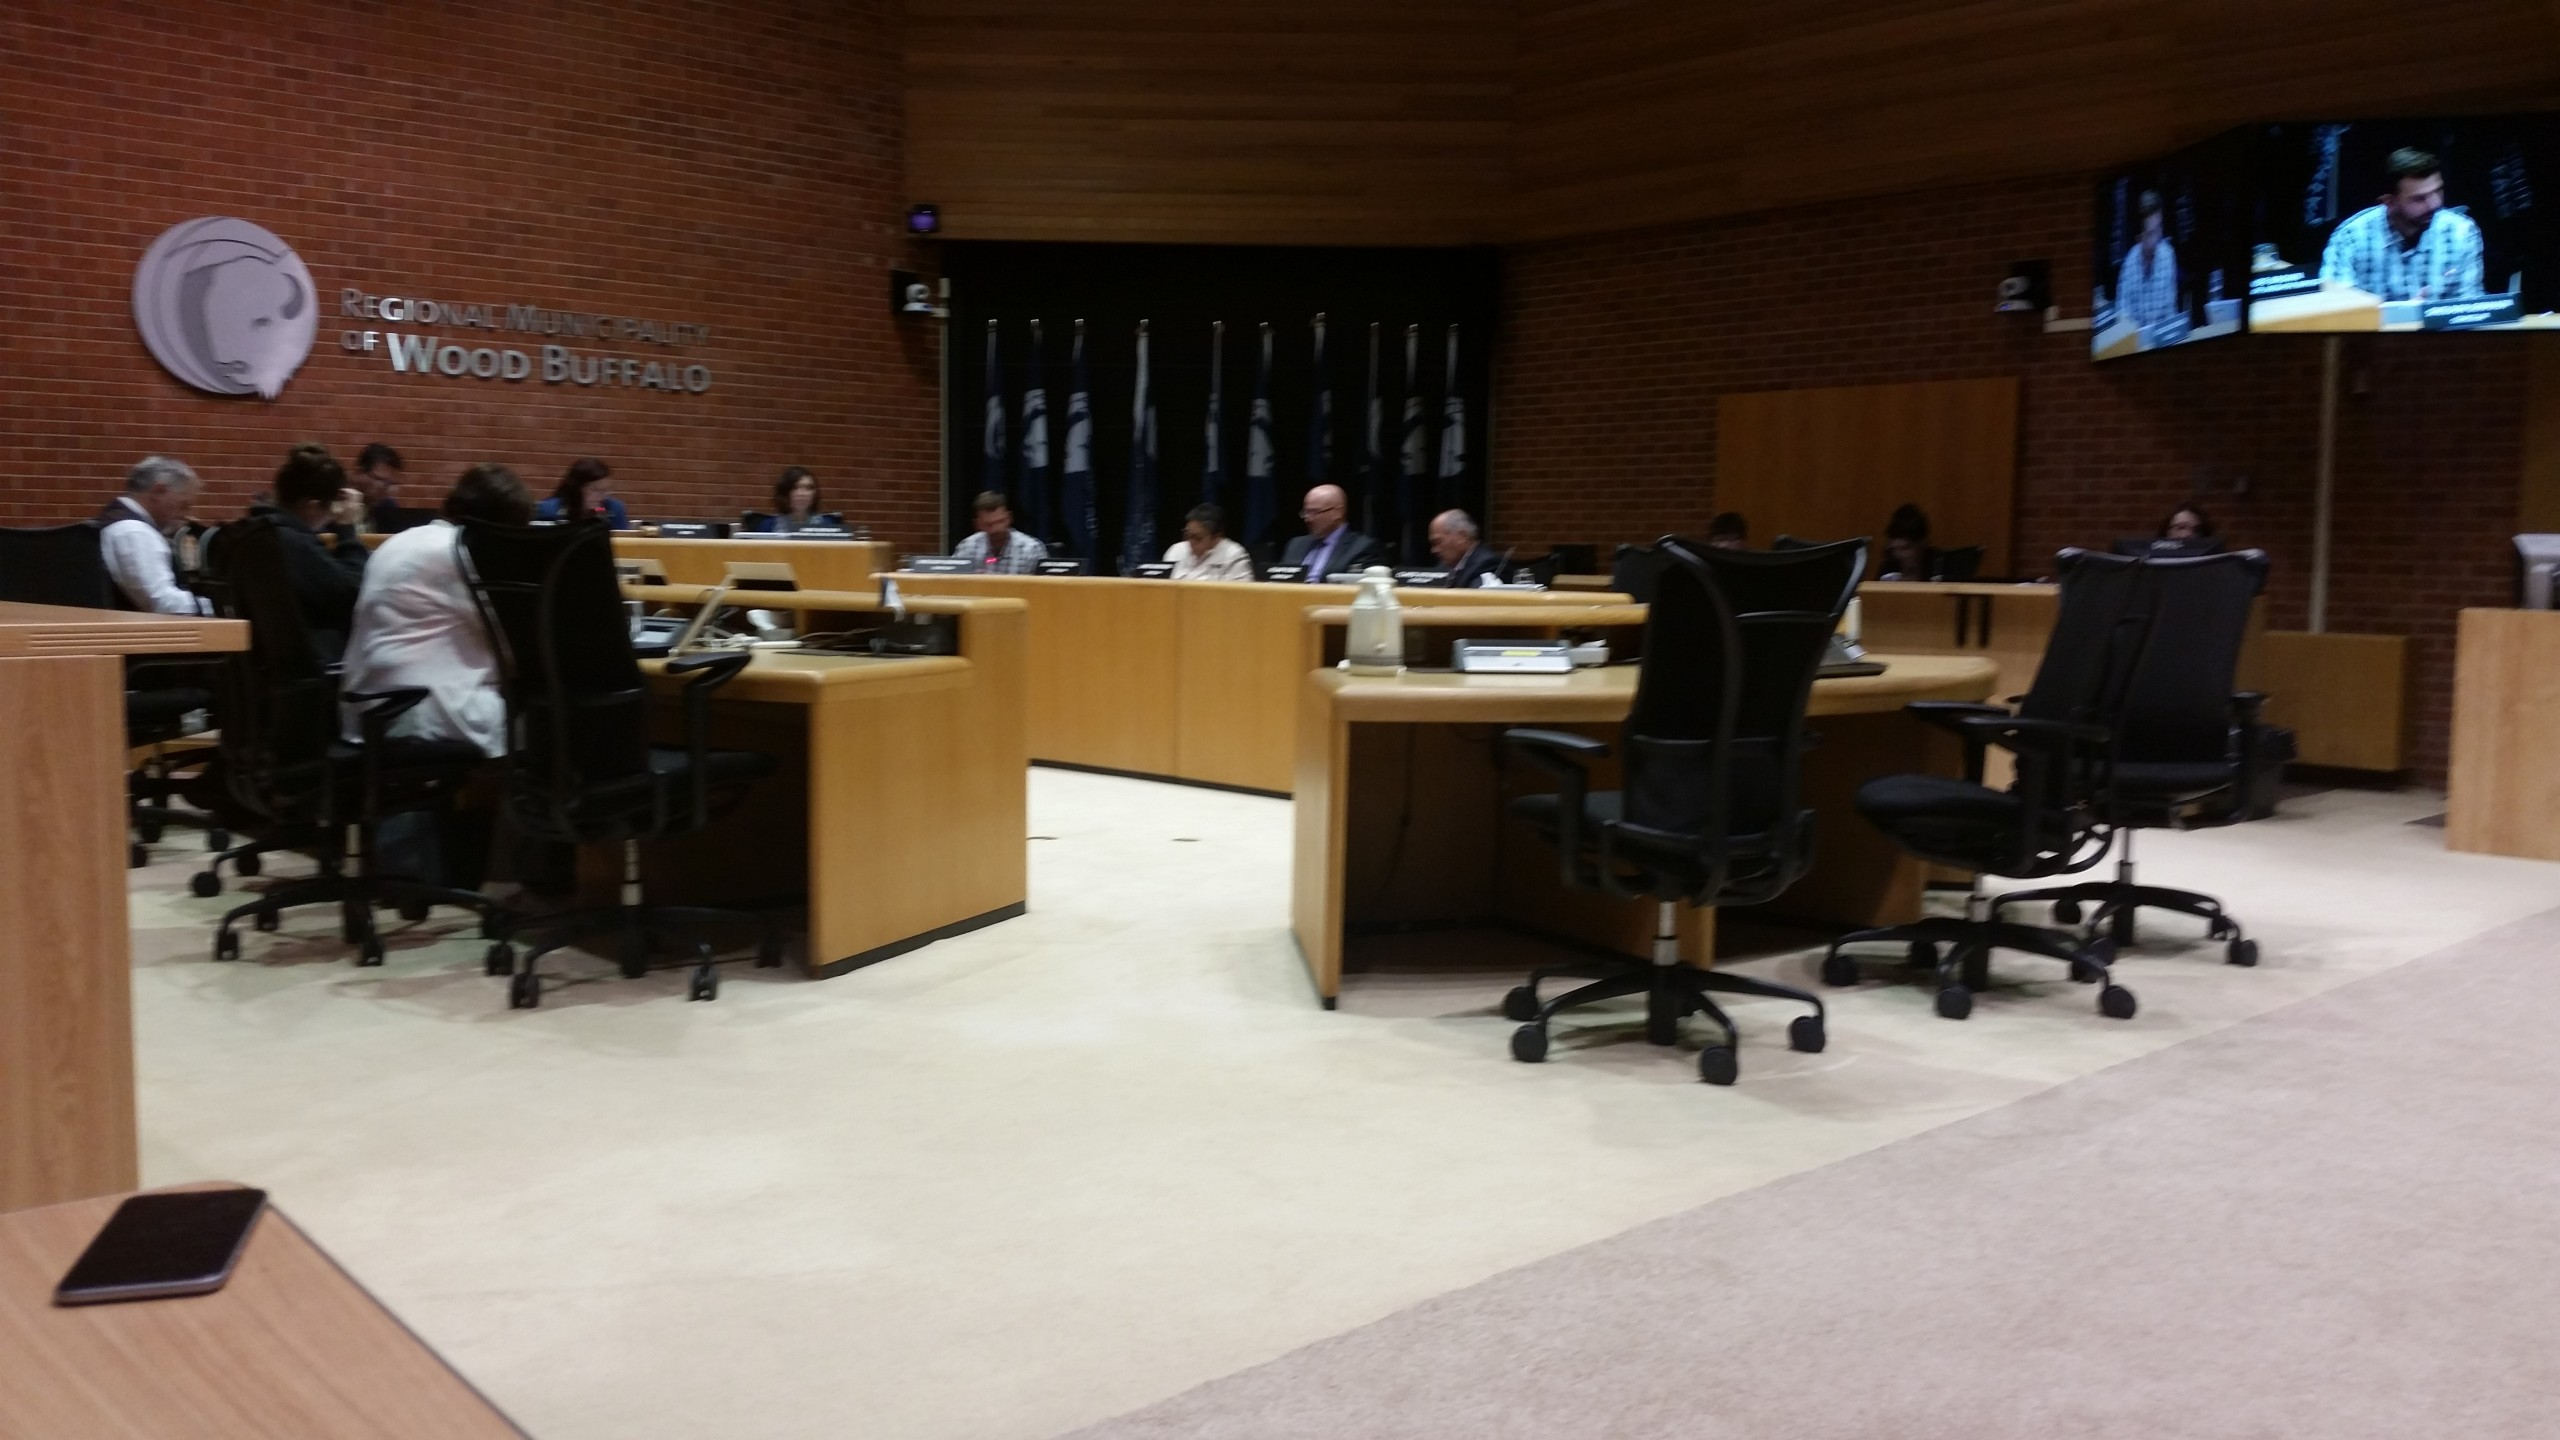 Council supports three new motions to further rebuild and help compensate residents